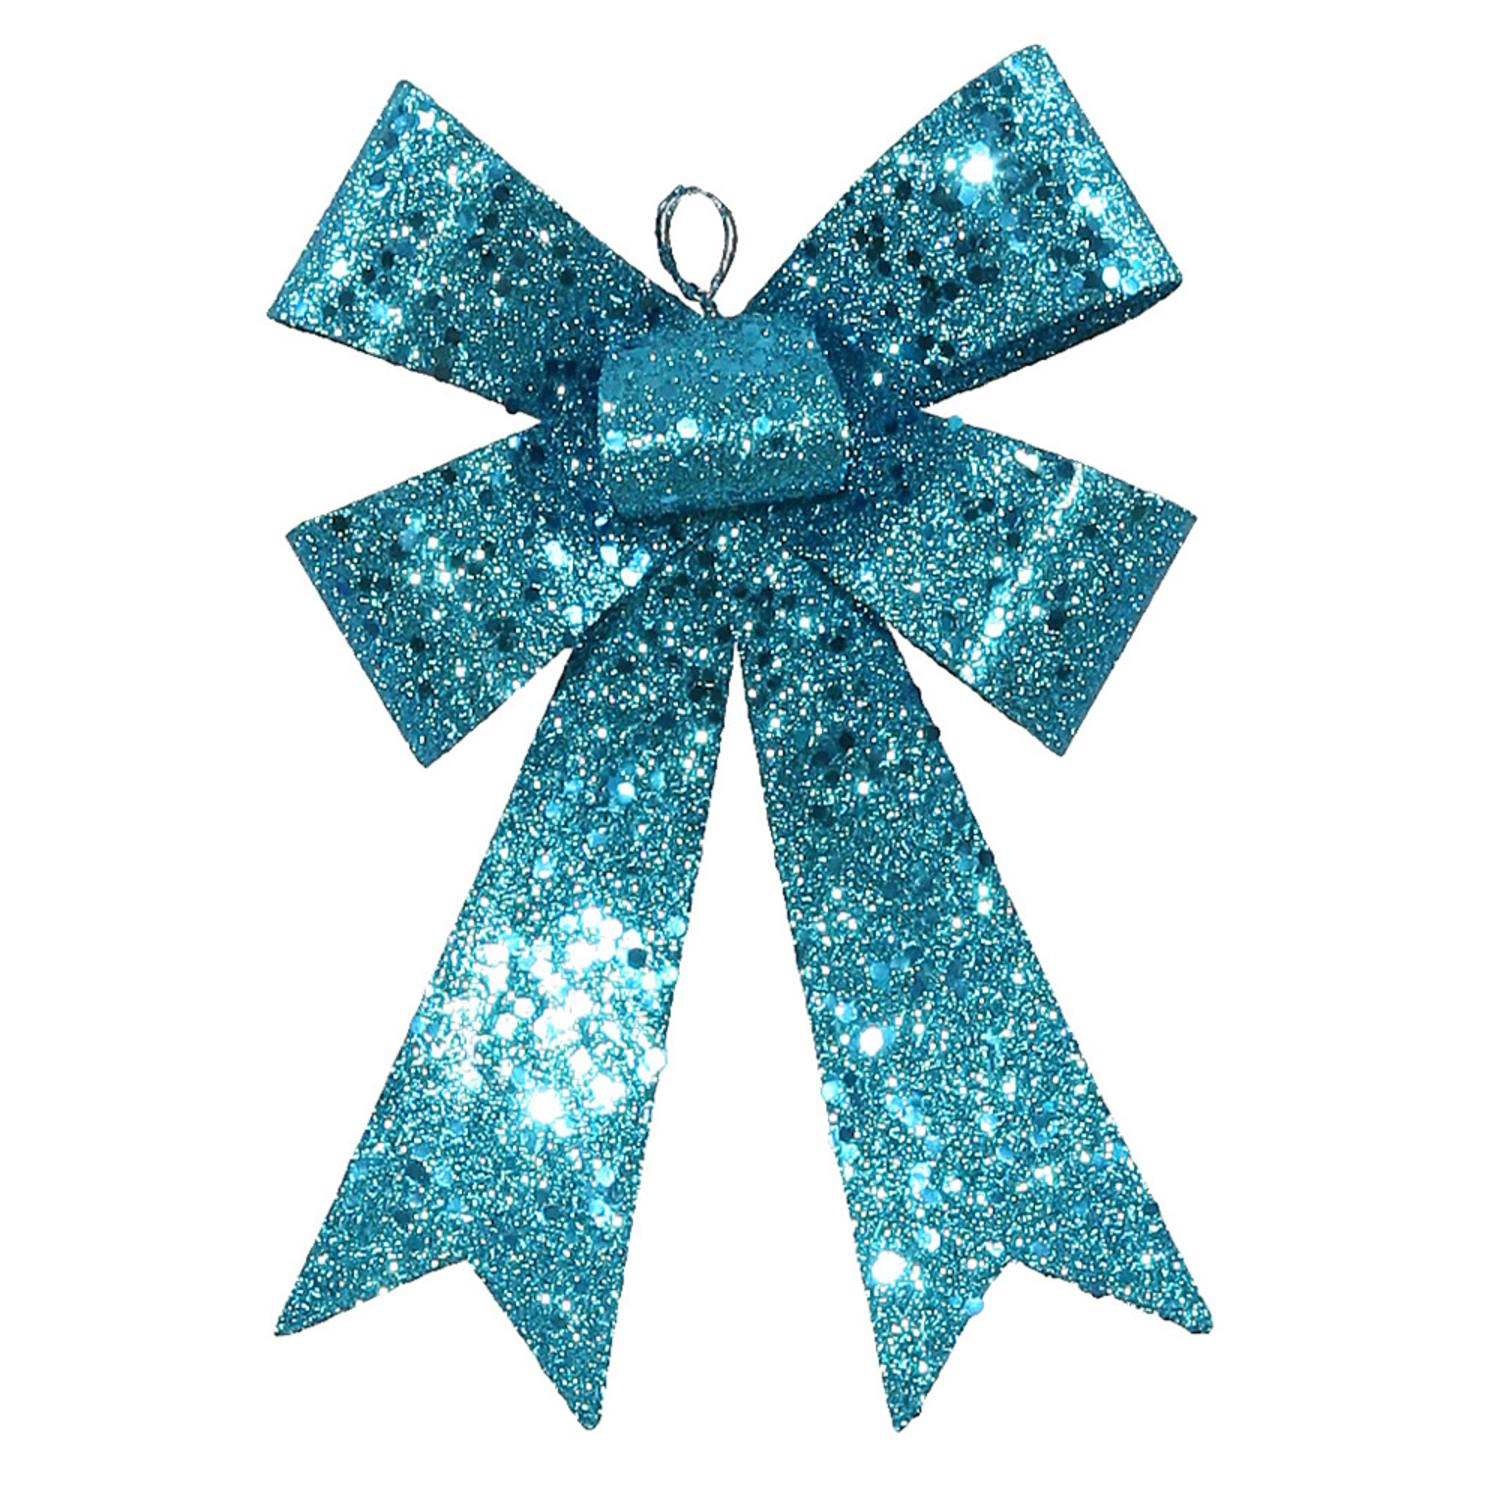 vickerman 7 sequin and glitter bow christmas ornament turquoise blue walmartcom